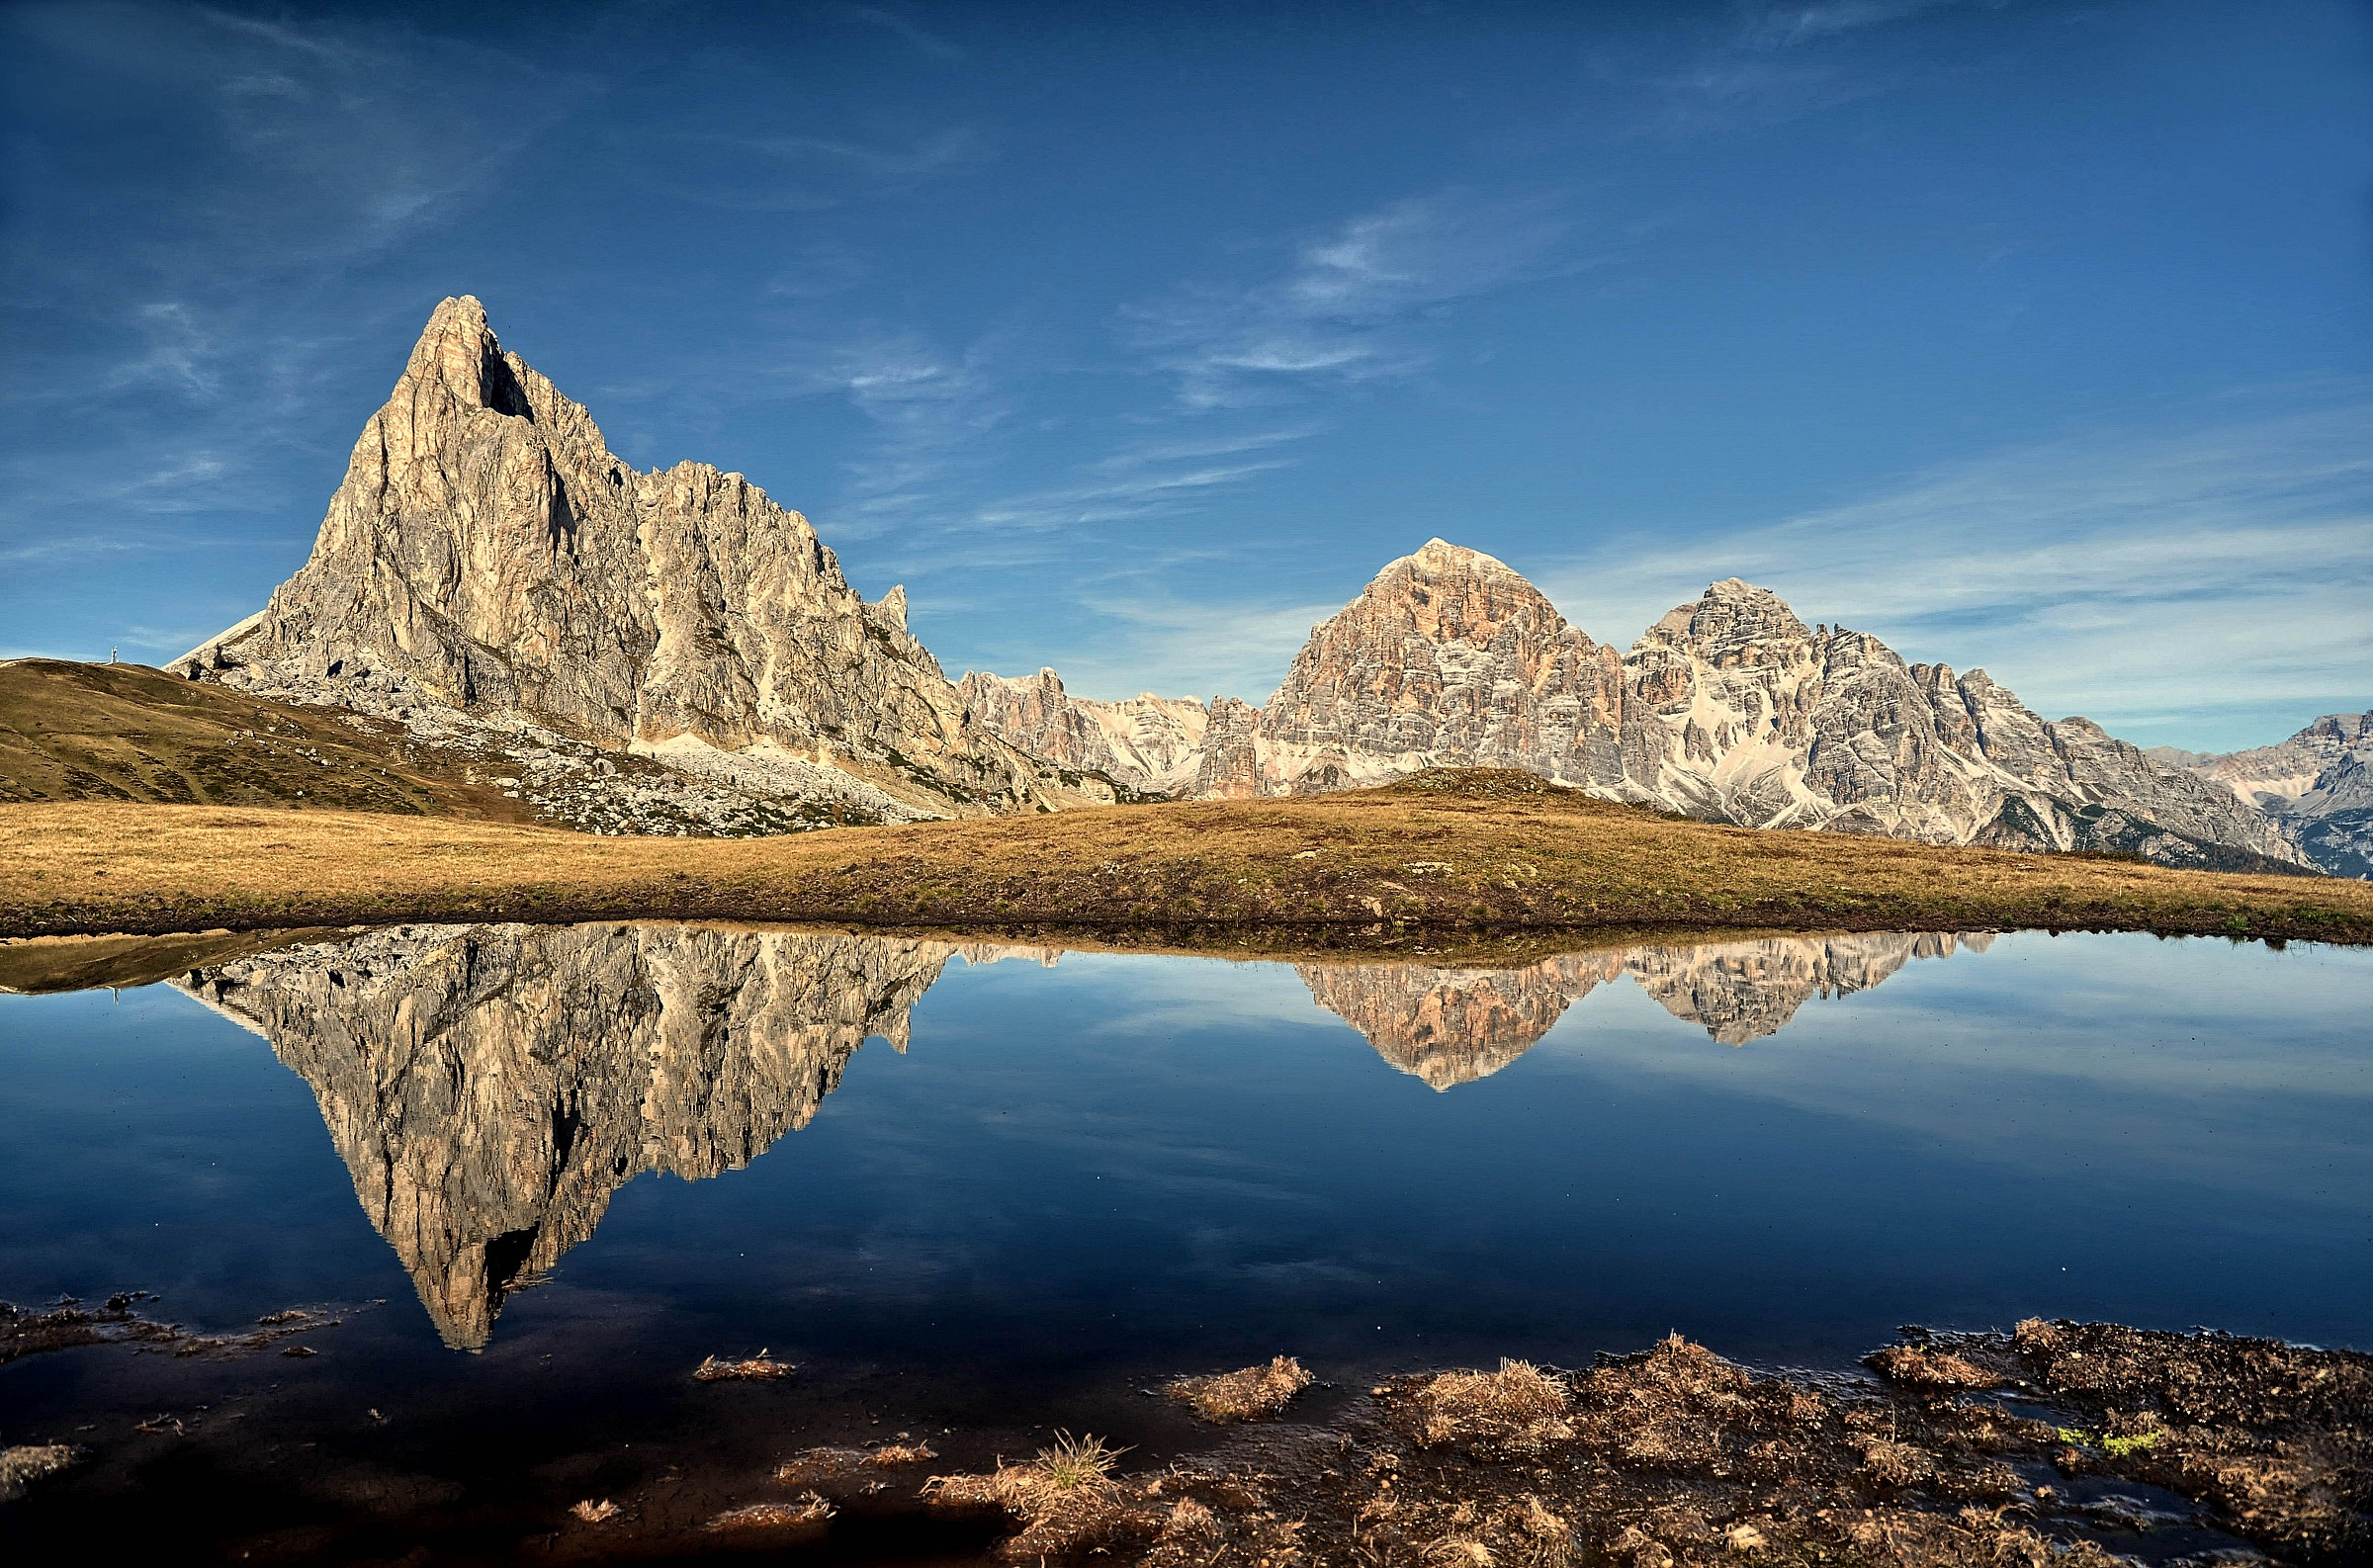 Reflections on the Passo Giau...